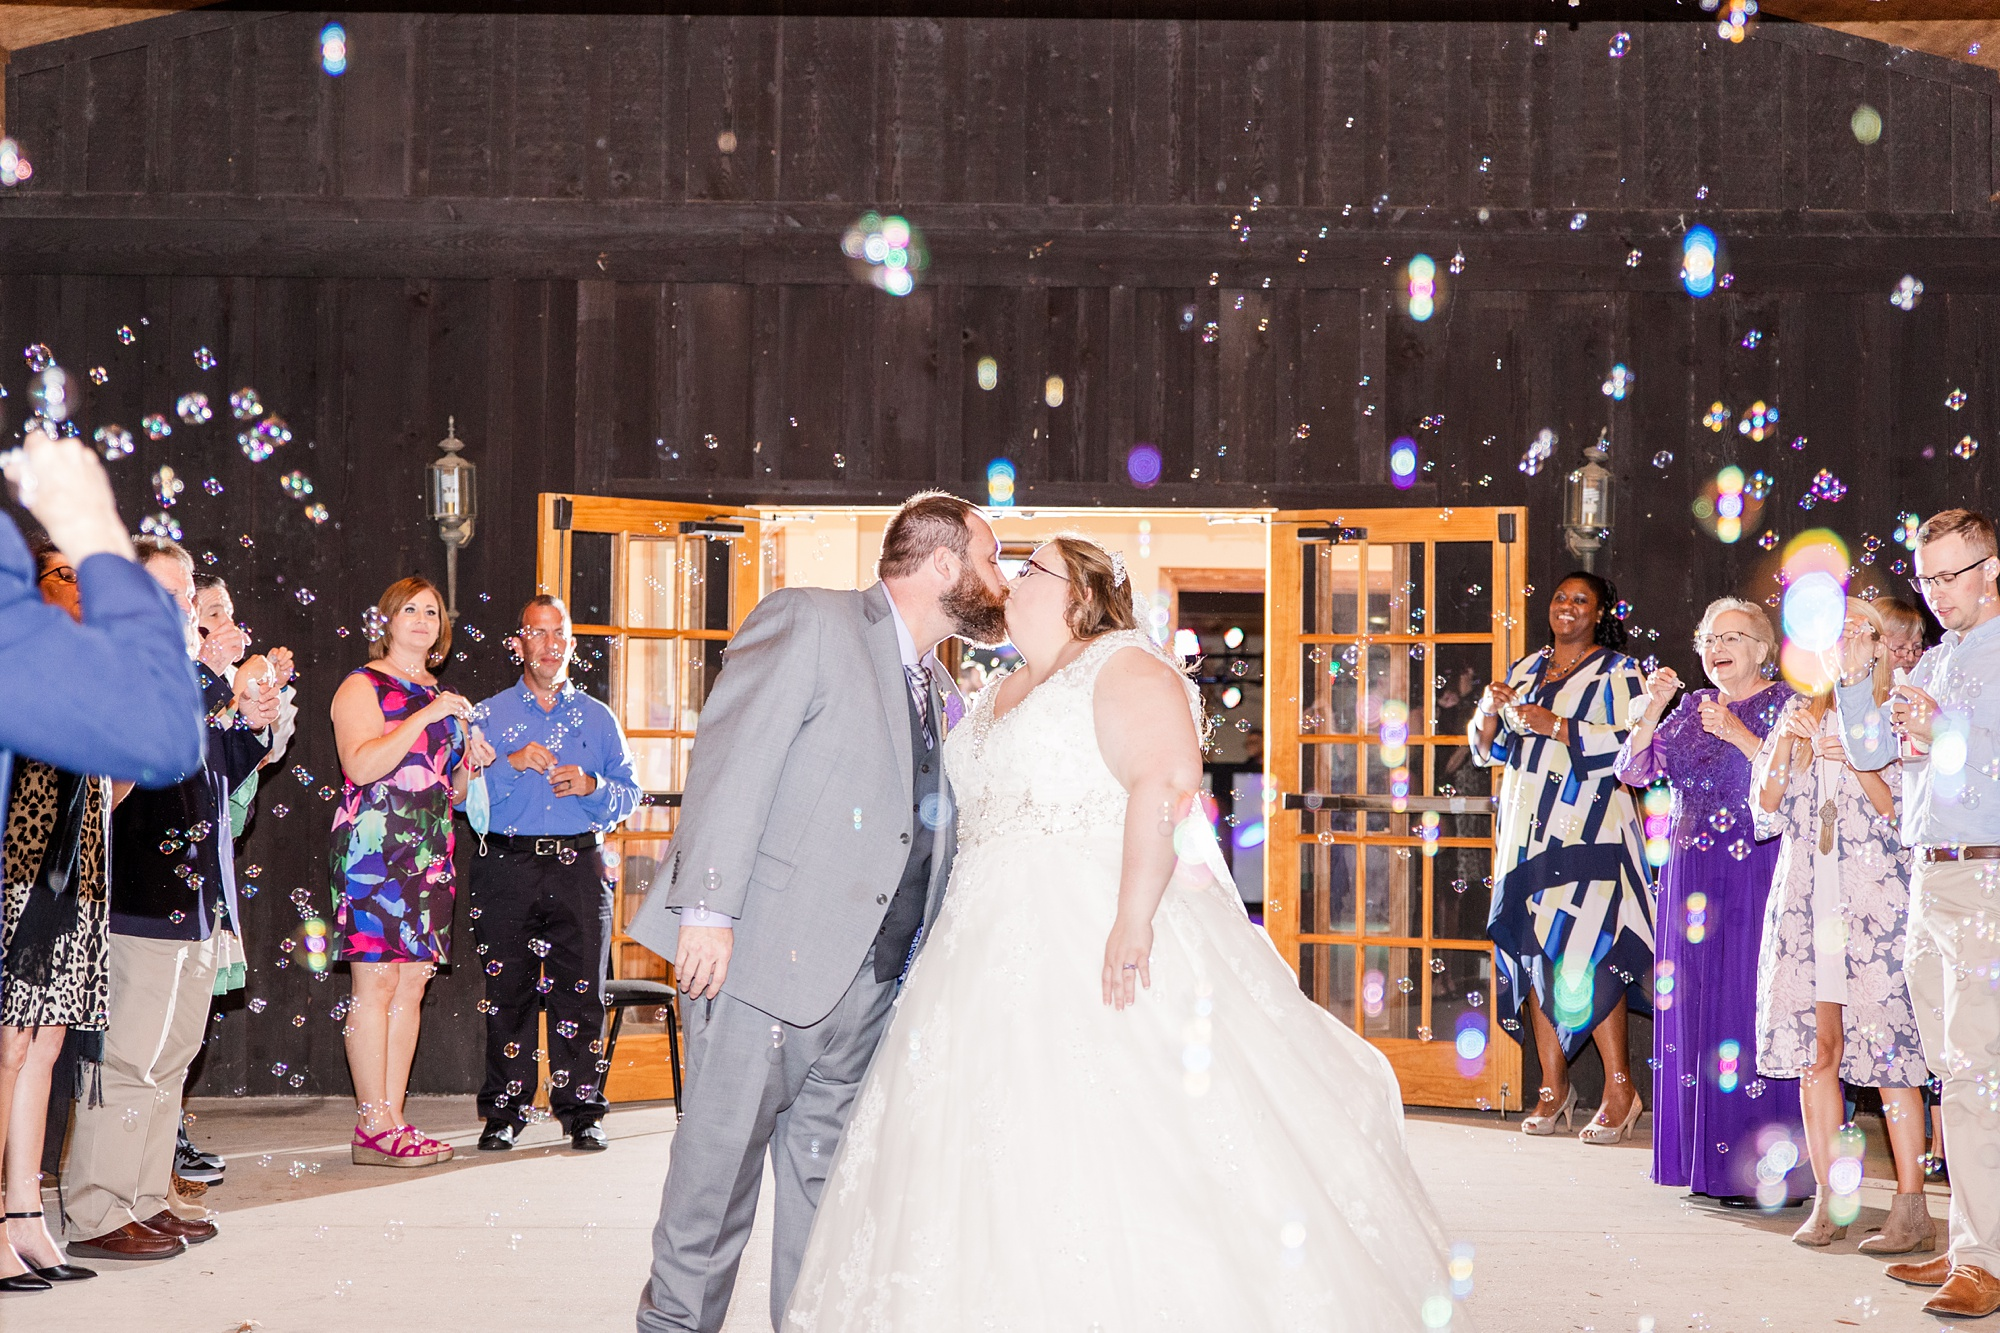 bubble exit to end intimate Satsuma wedding